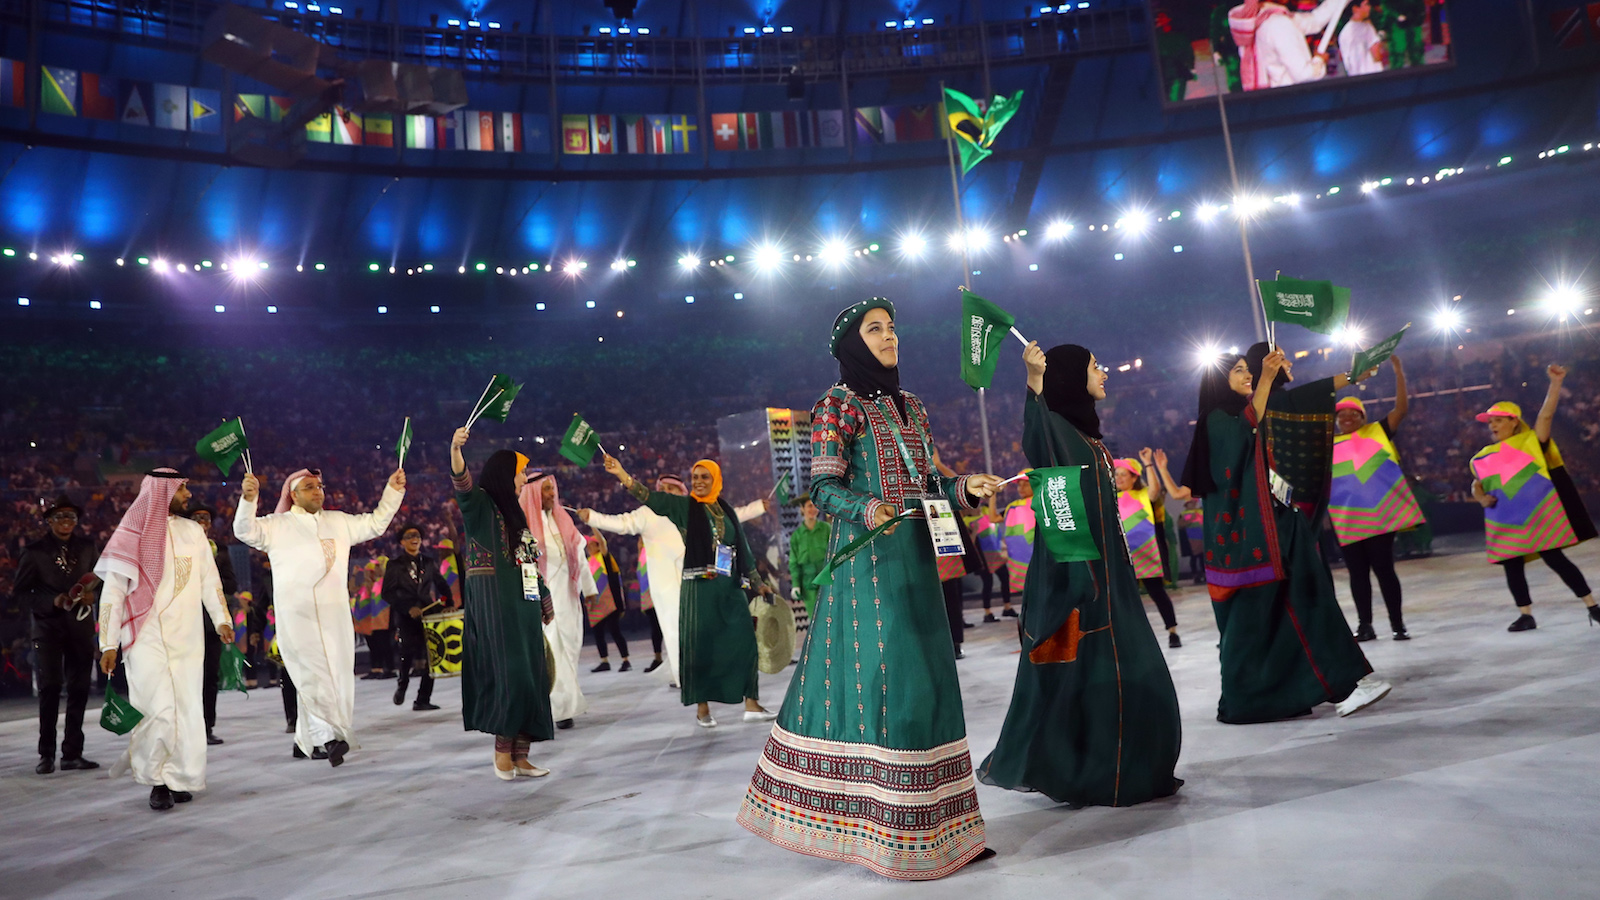 2016 Rio Olympics Saudi Arabia S Female Athletes Can Compete In The